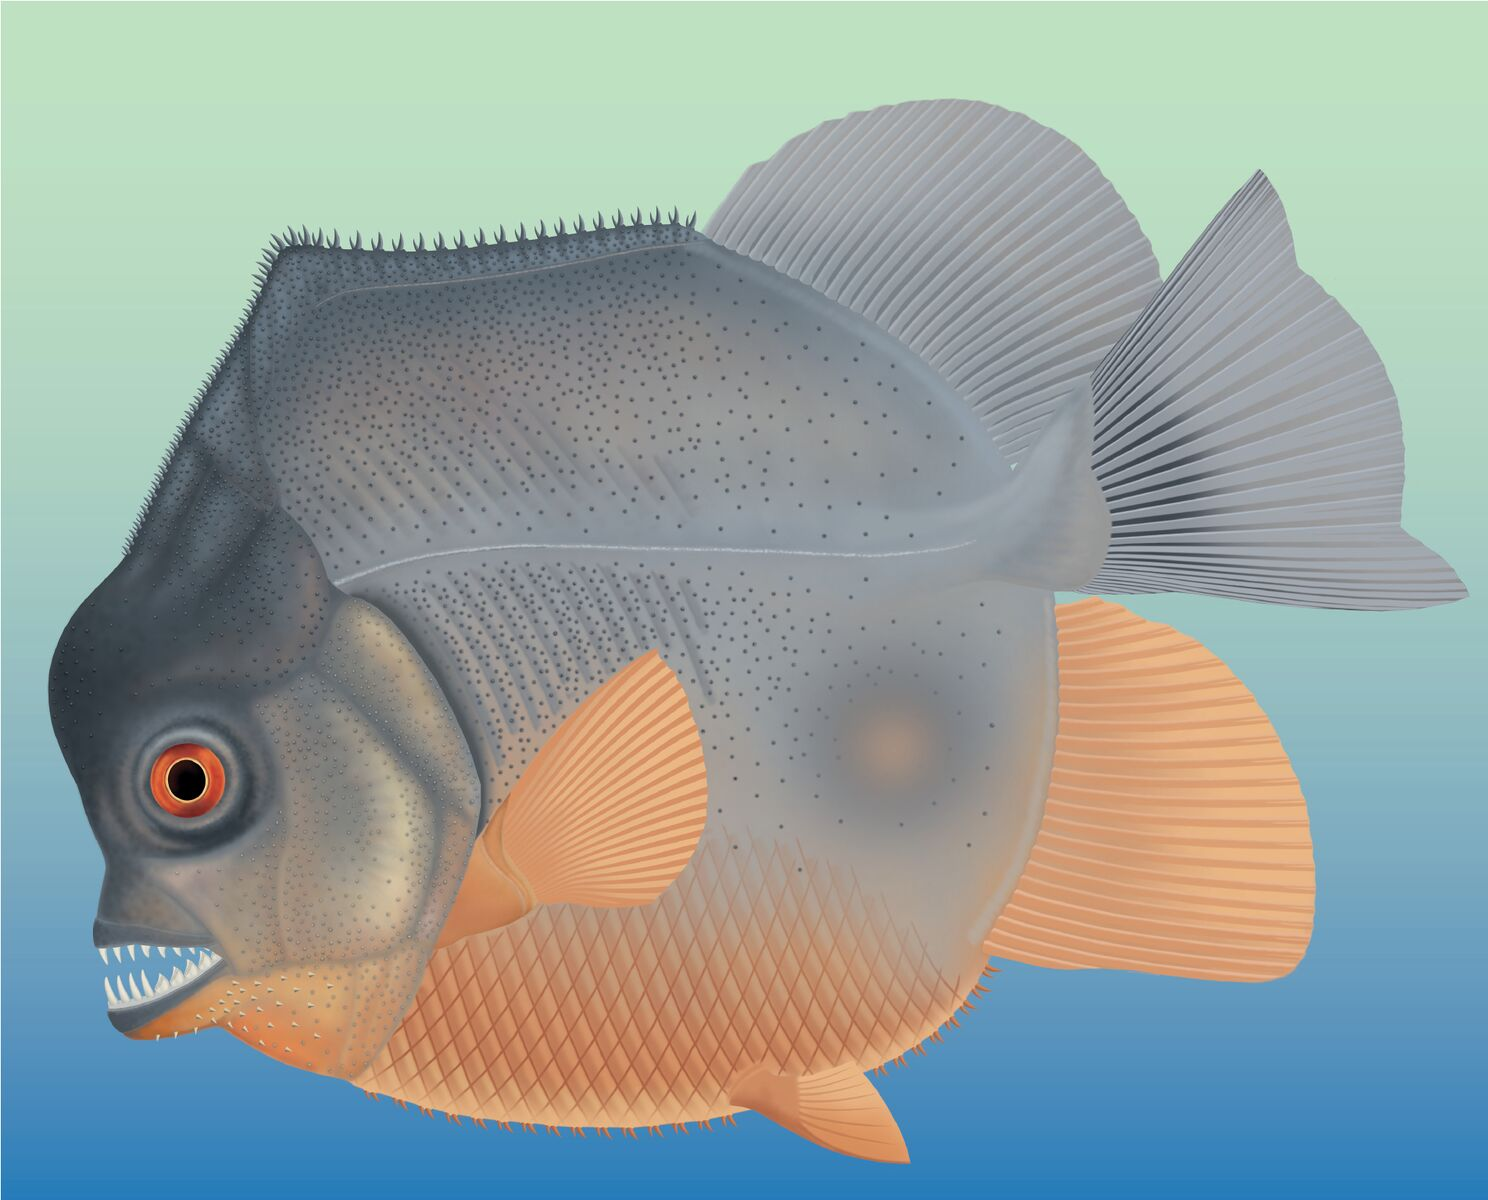 This image shows an artist's reconstruction of the Piranha like fish Credit: Jura-Museum Eichstätt